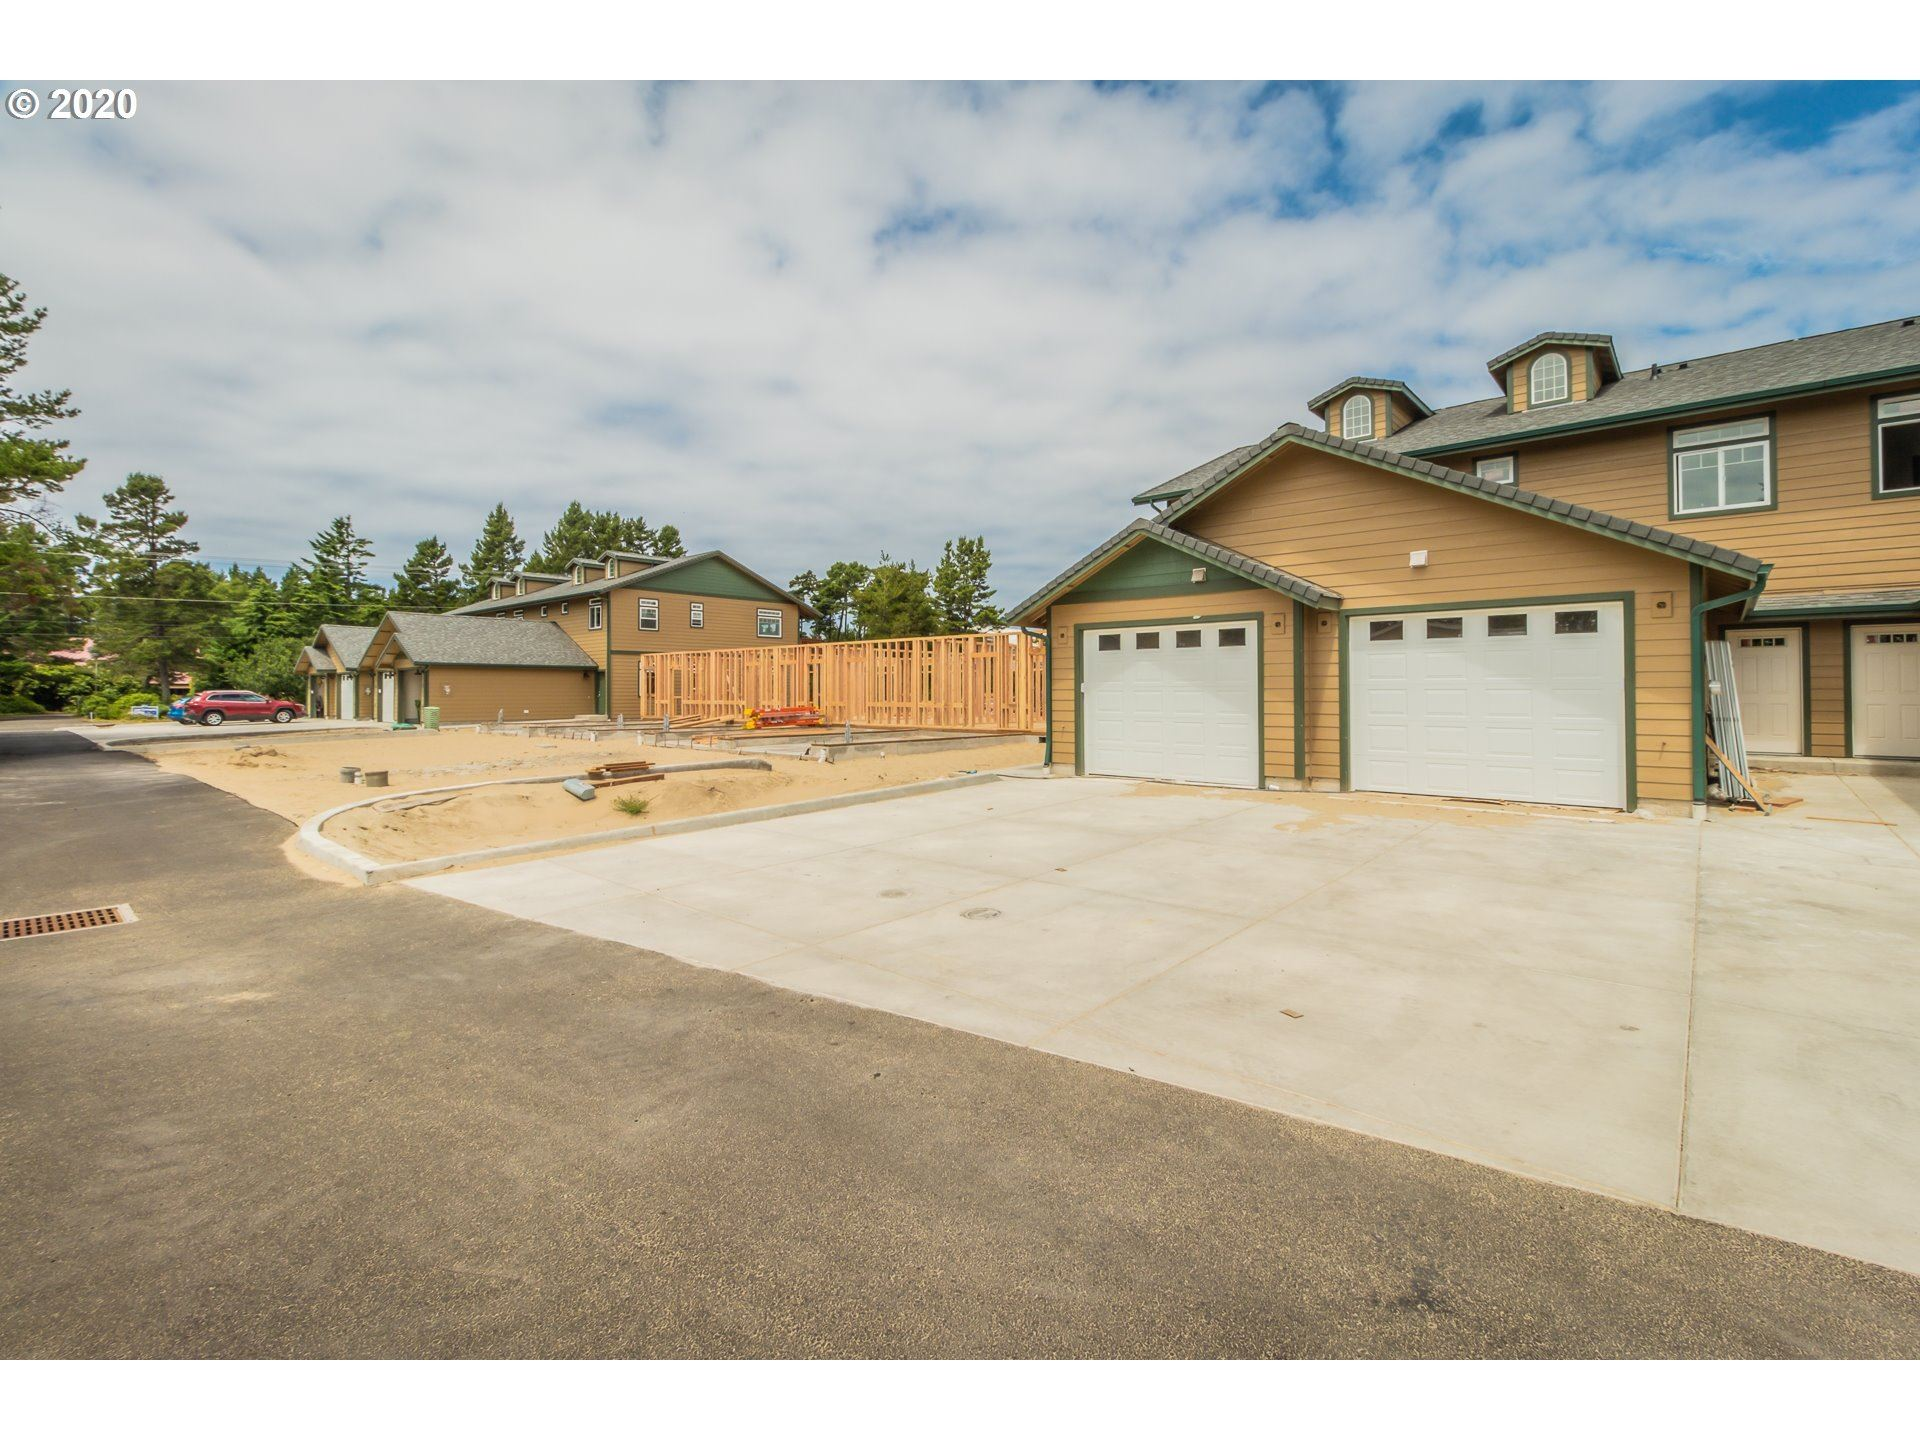 1690 32ND ST, Florence, OR 97439 - MLS#: 20480142